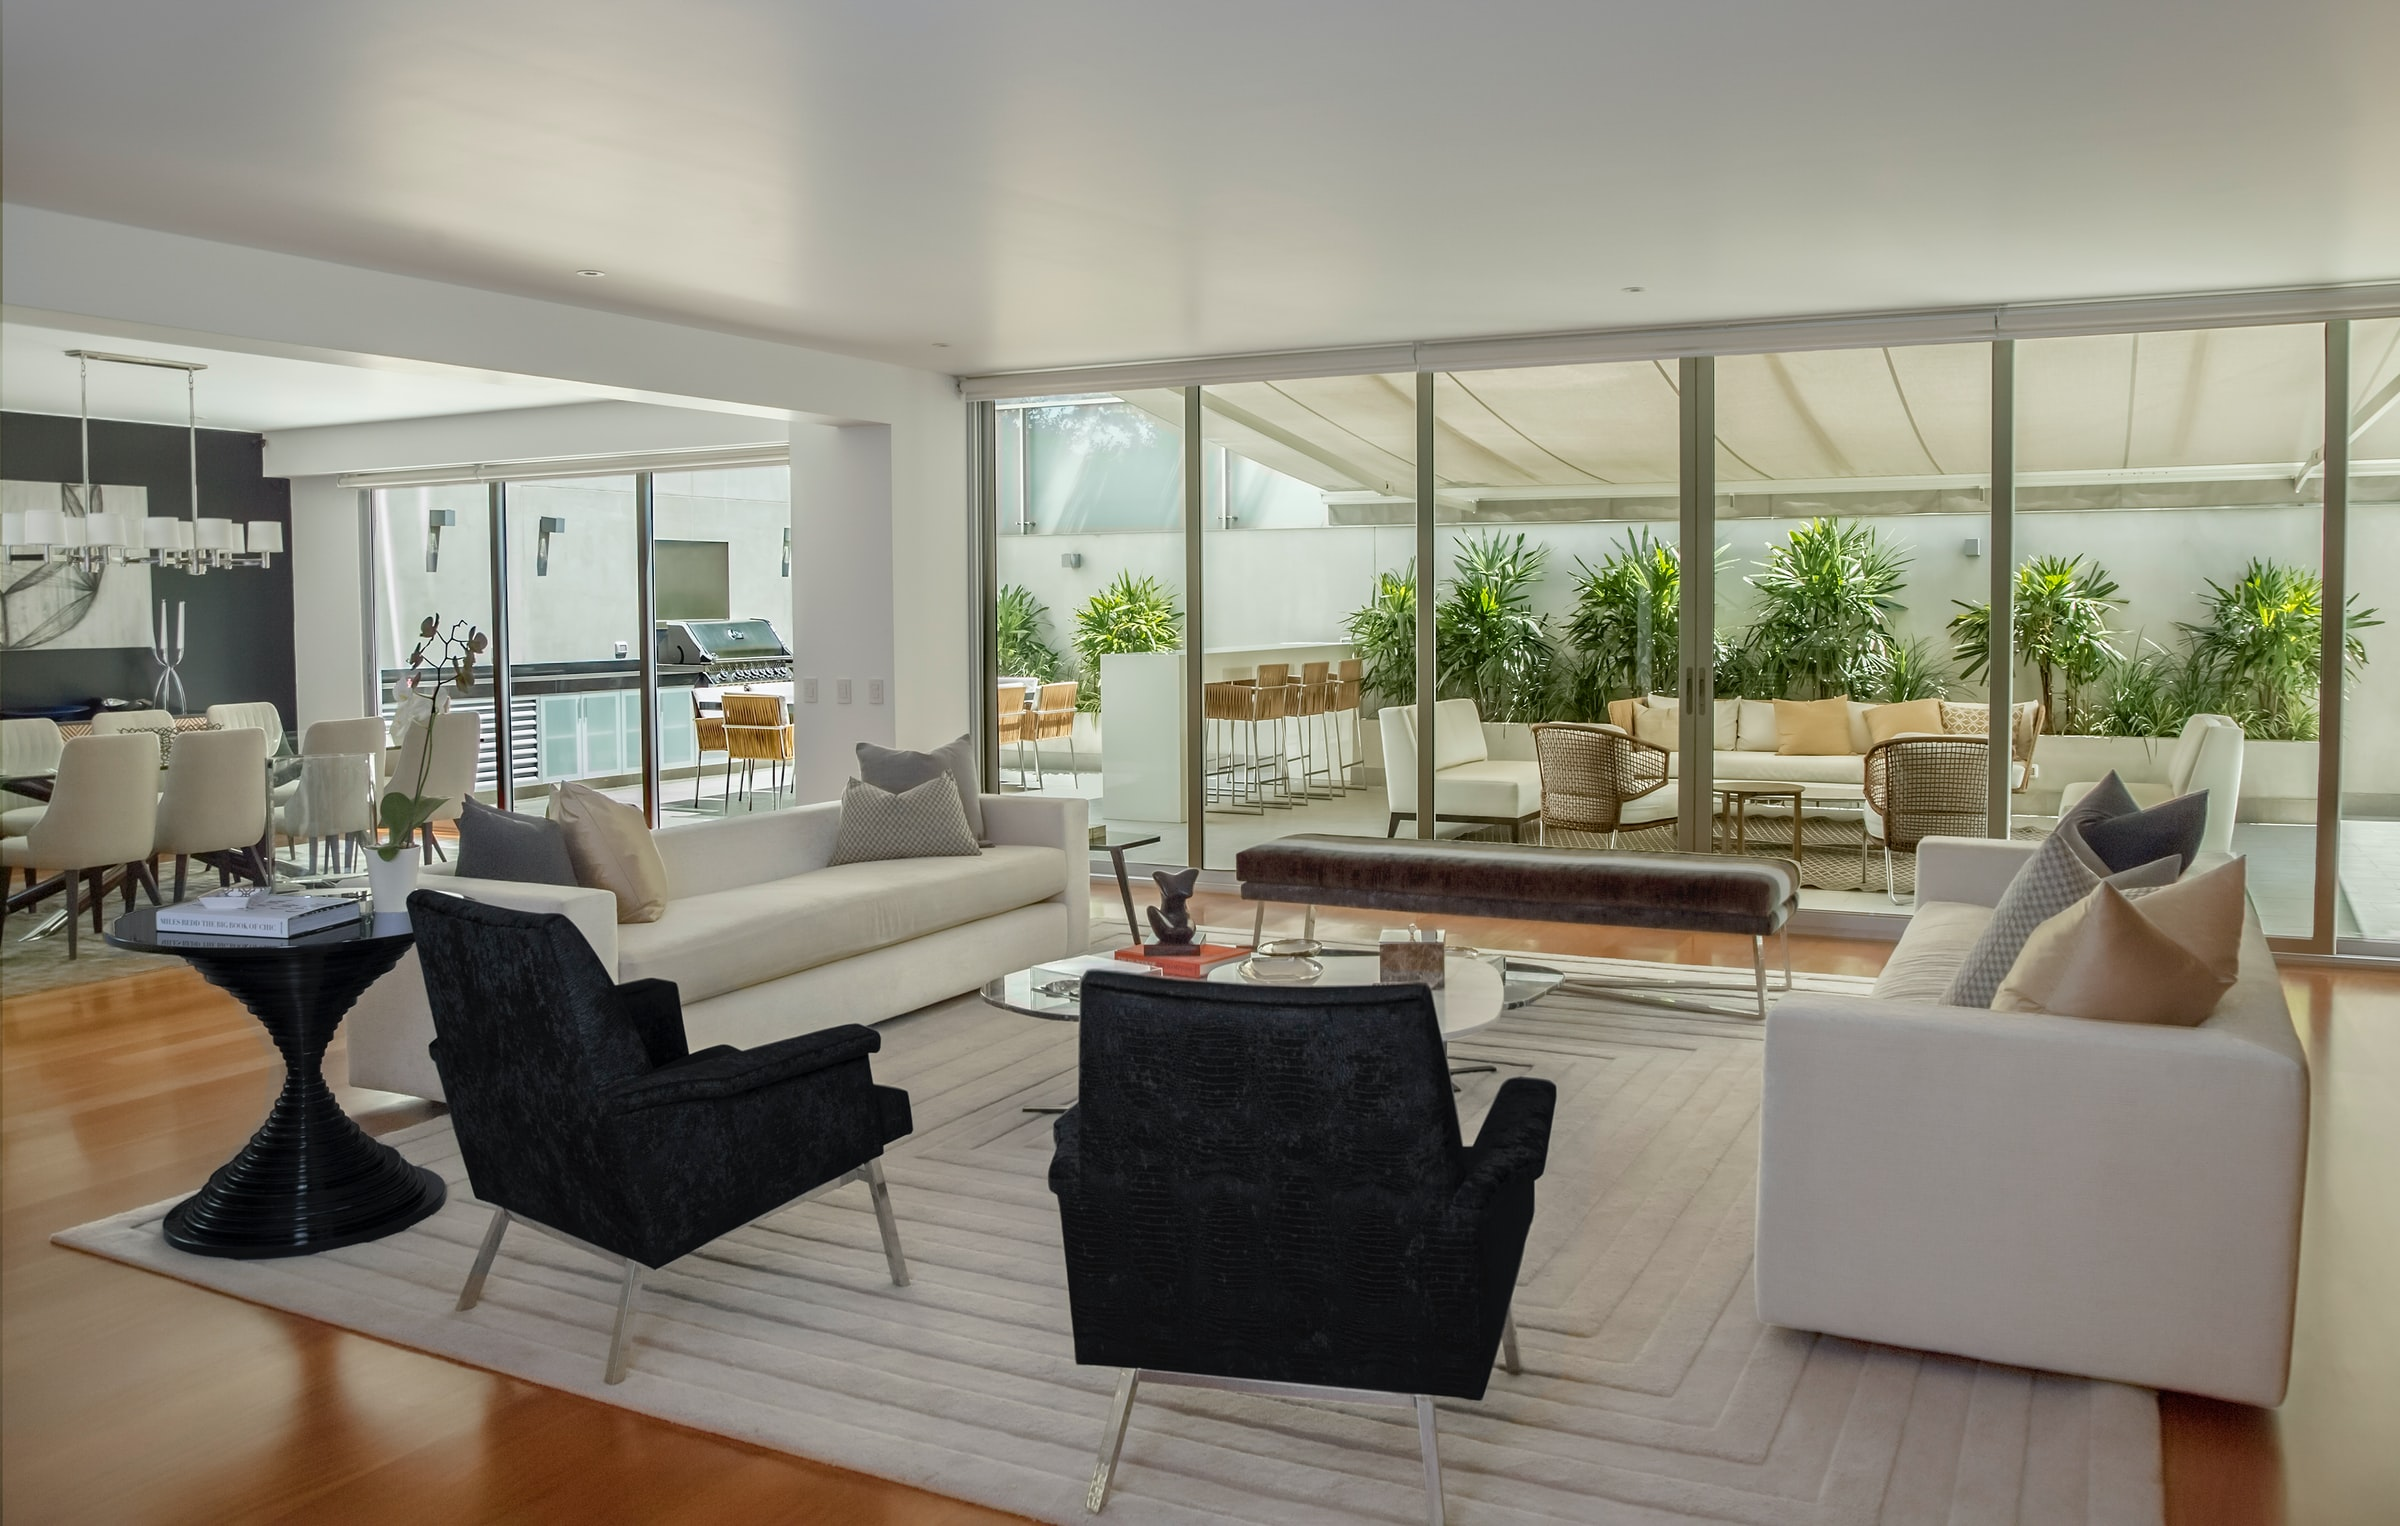 Top 10 Most Googled Interior Designers In The World Revealed